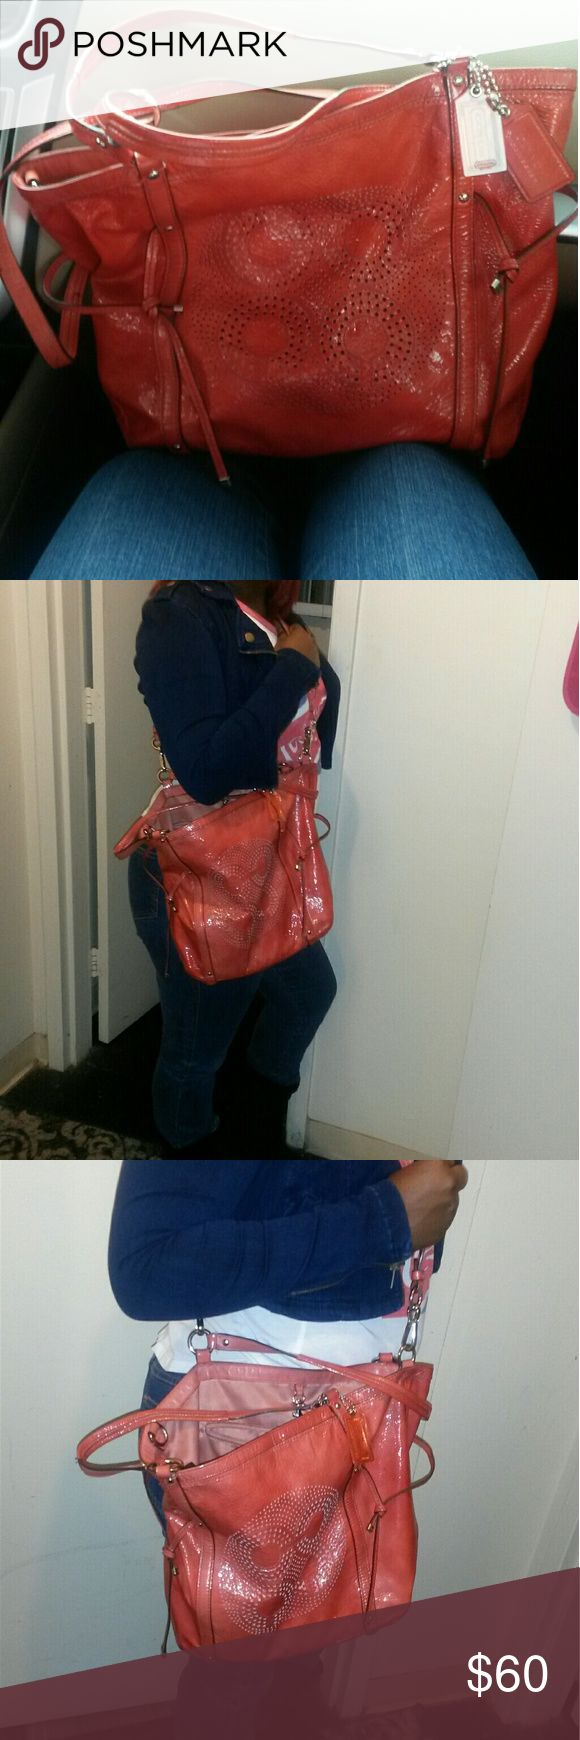 """Authentic Tangerine coral coach handbag purse PreOwned Coach Satchel  Big and Roomy with long straps.. I'm 5""""8 for reference Coach Bags Shoulder Bags"""